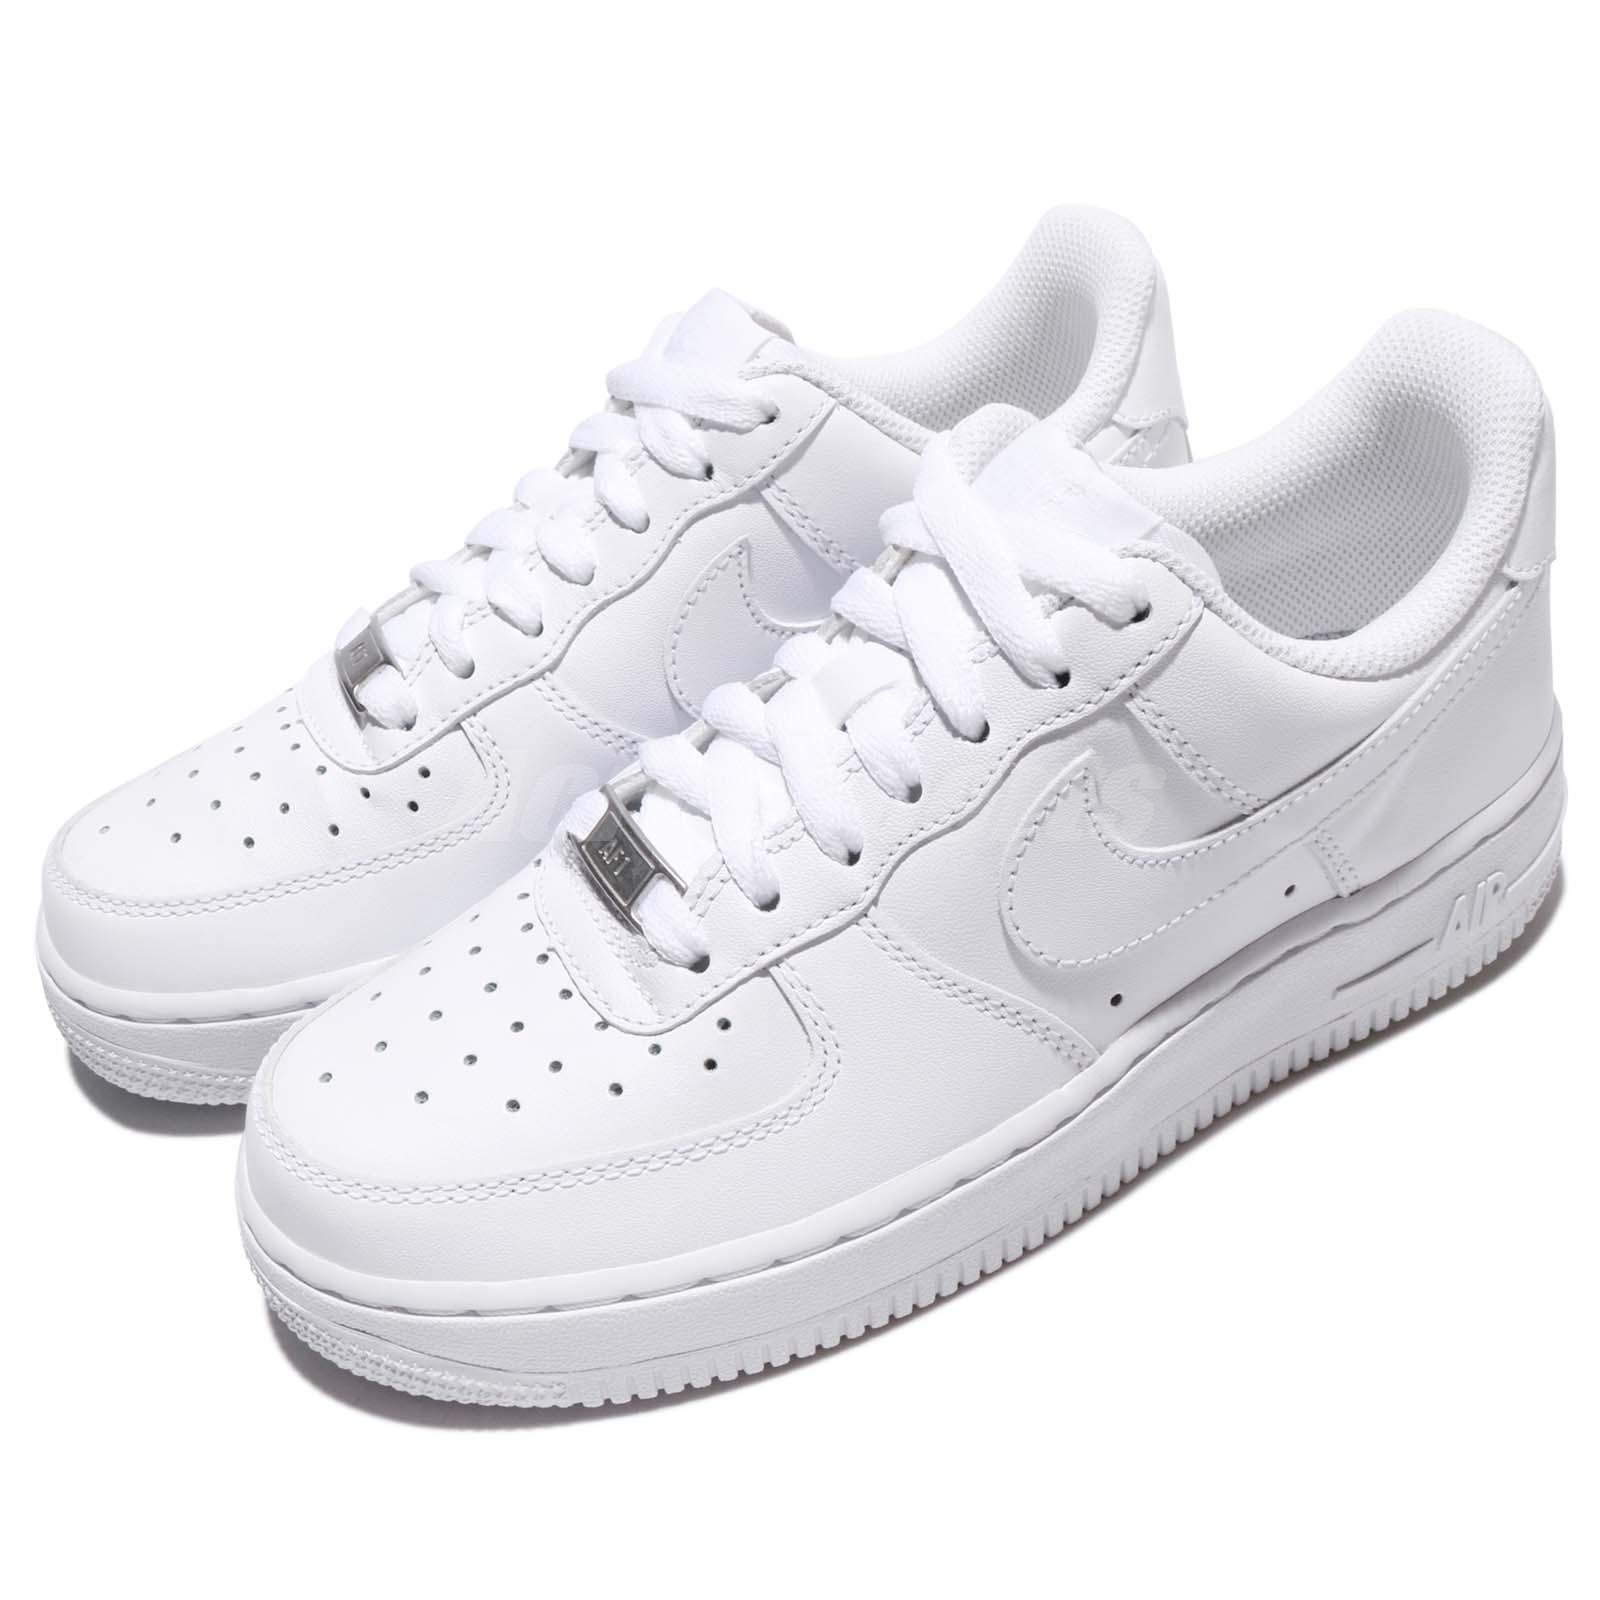 air force 1 nike vintage